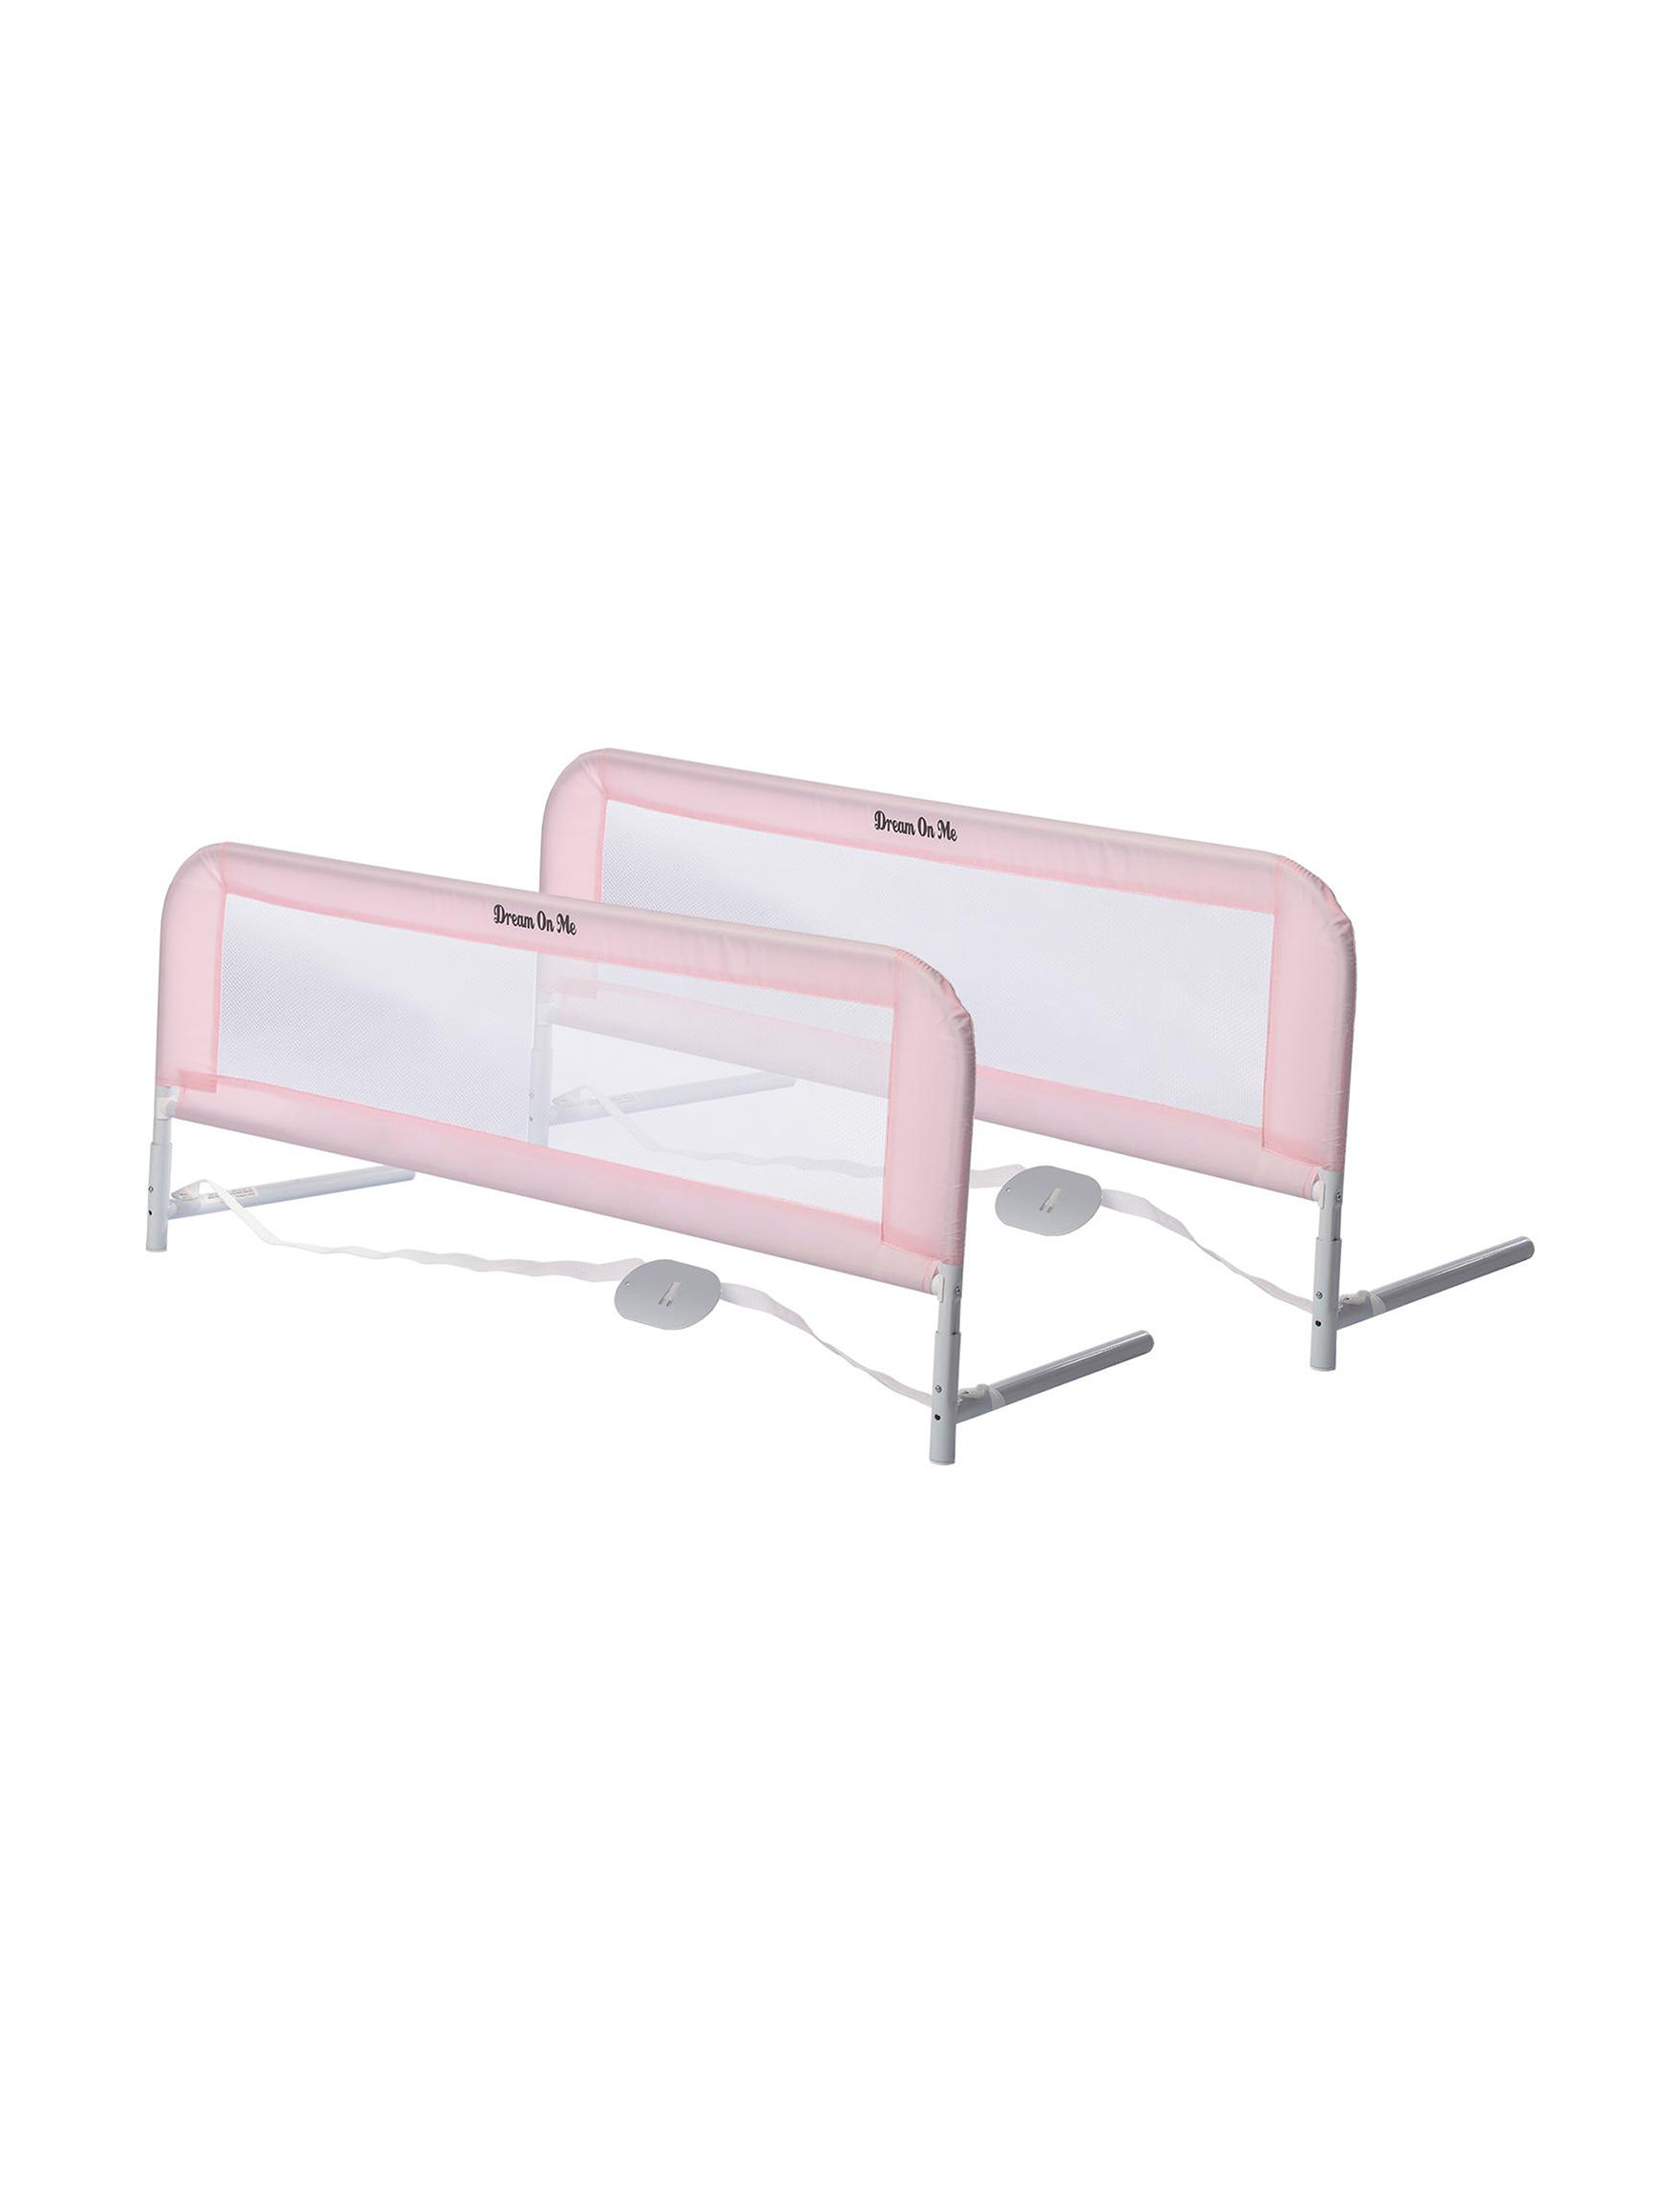 Dream On Me Pink Beds & Headboards Bedroom Furniture